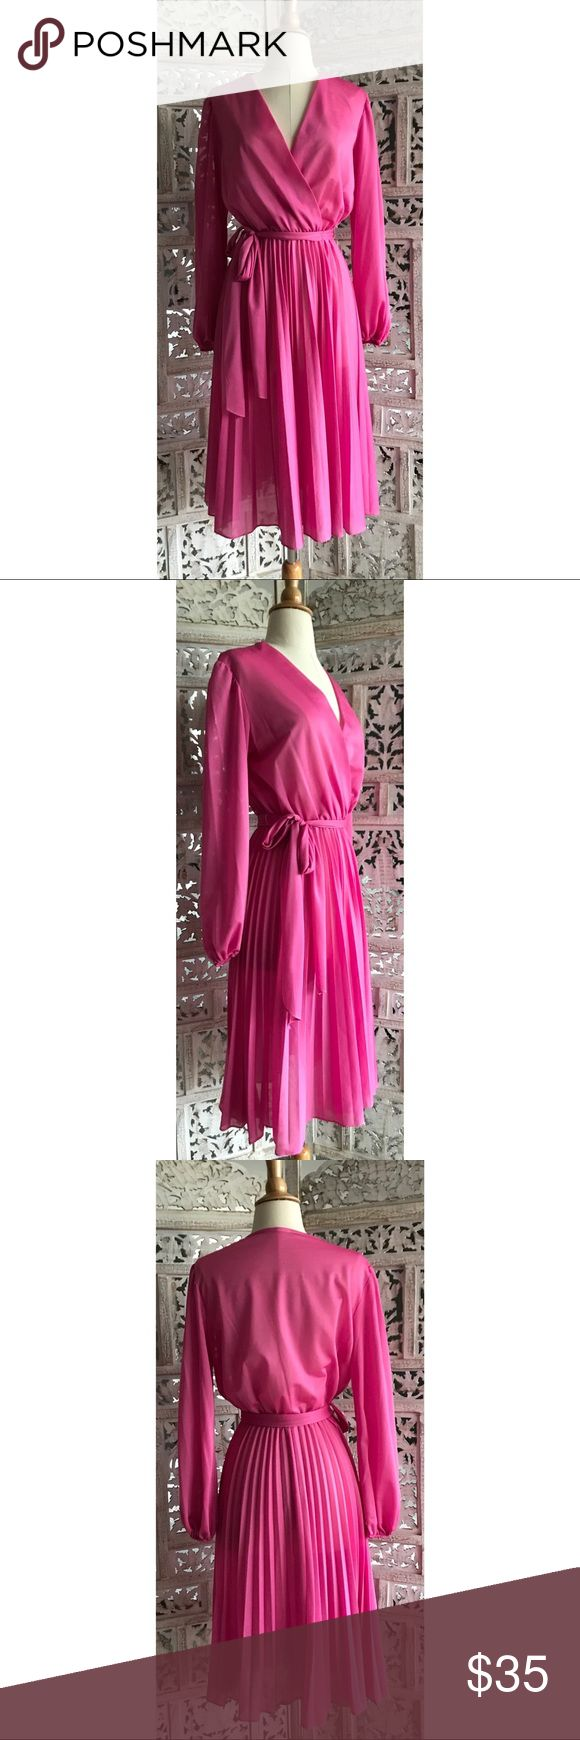 """Vintage 70's pleated dress Vintage 1970's semi-sheer American-Hustle-worthy dress in bold magenta. Faux wrap front with balloon sleeves, a flowy pleated skirt and self tie belt. There are a few marks on the front bust line, probably where it was pinned together for modesty. With some steaming they're not very noticeable. Wear over a pink or nude slip, heels and call it a night. Lying flat 17"""" bust, 11-16"""" expandable waist, 42"""" long, 17"""" inner sleeve. Vintage Dresses"""